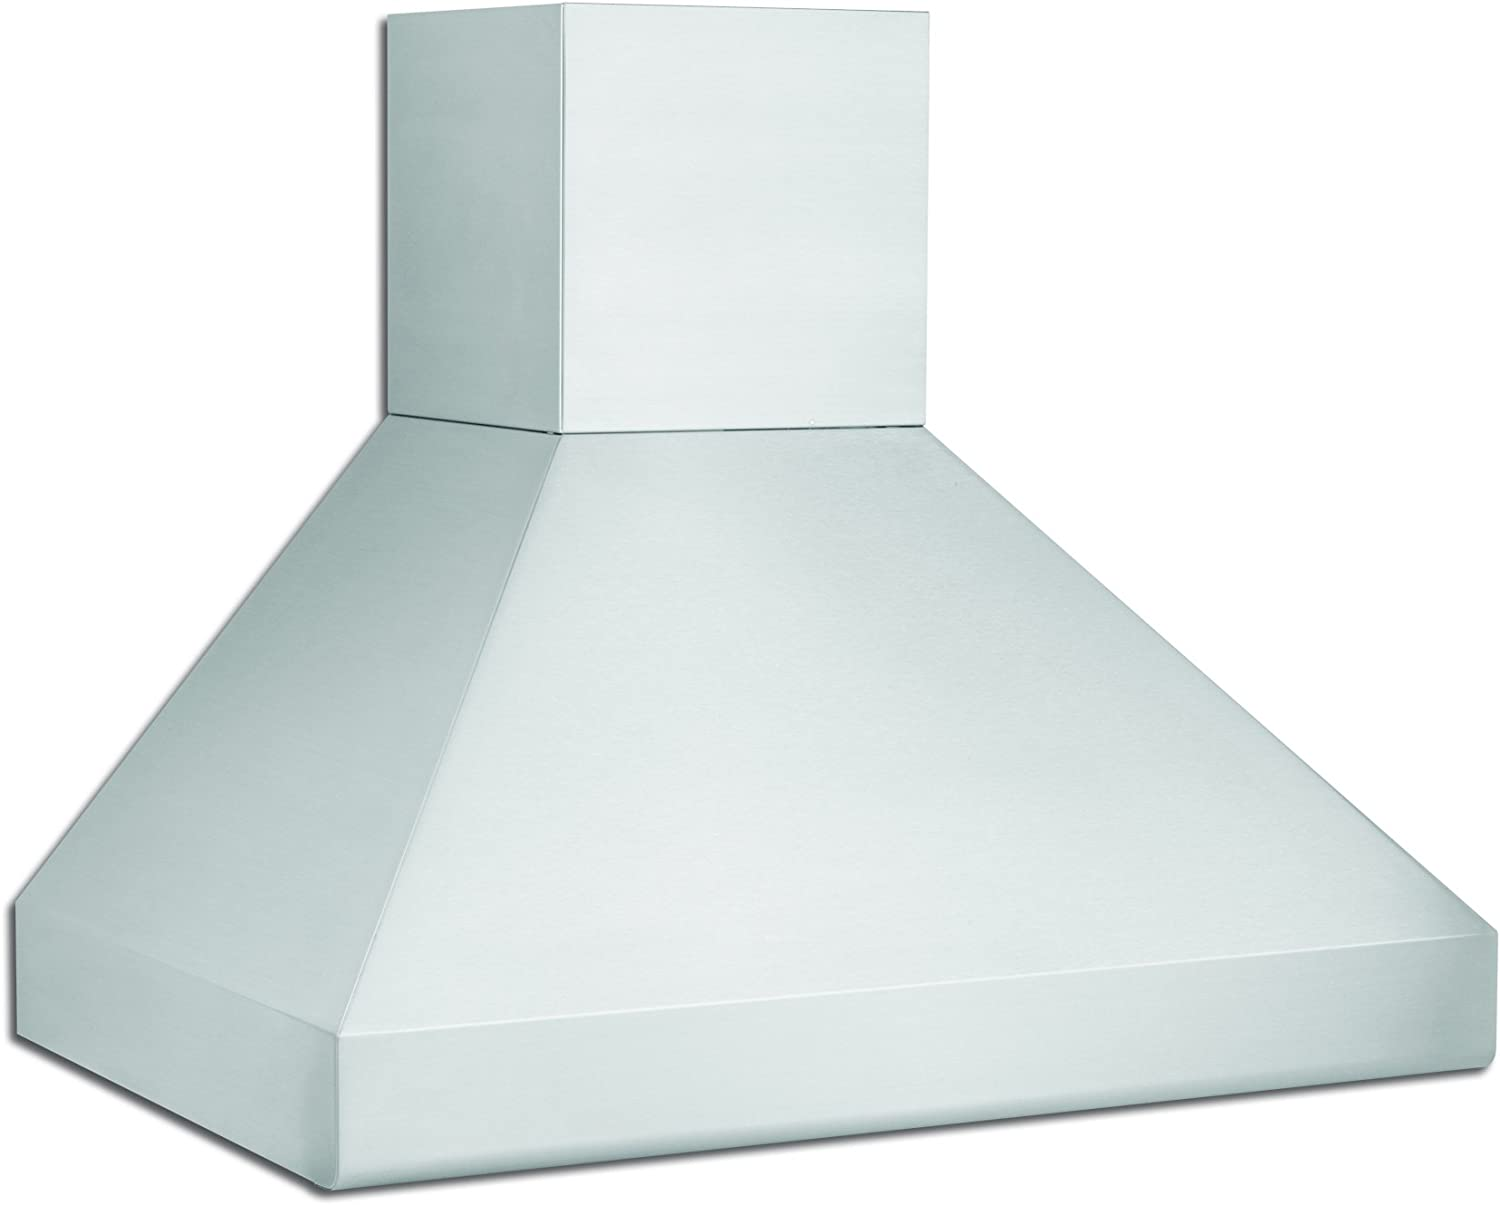 Vent-A-Hood NEPH18-236 SS 600 CFM Euro-Style Wall Mount Range Hood, SS/36, Stainless Steel